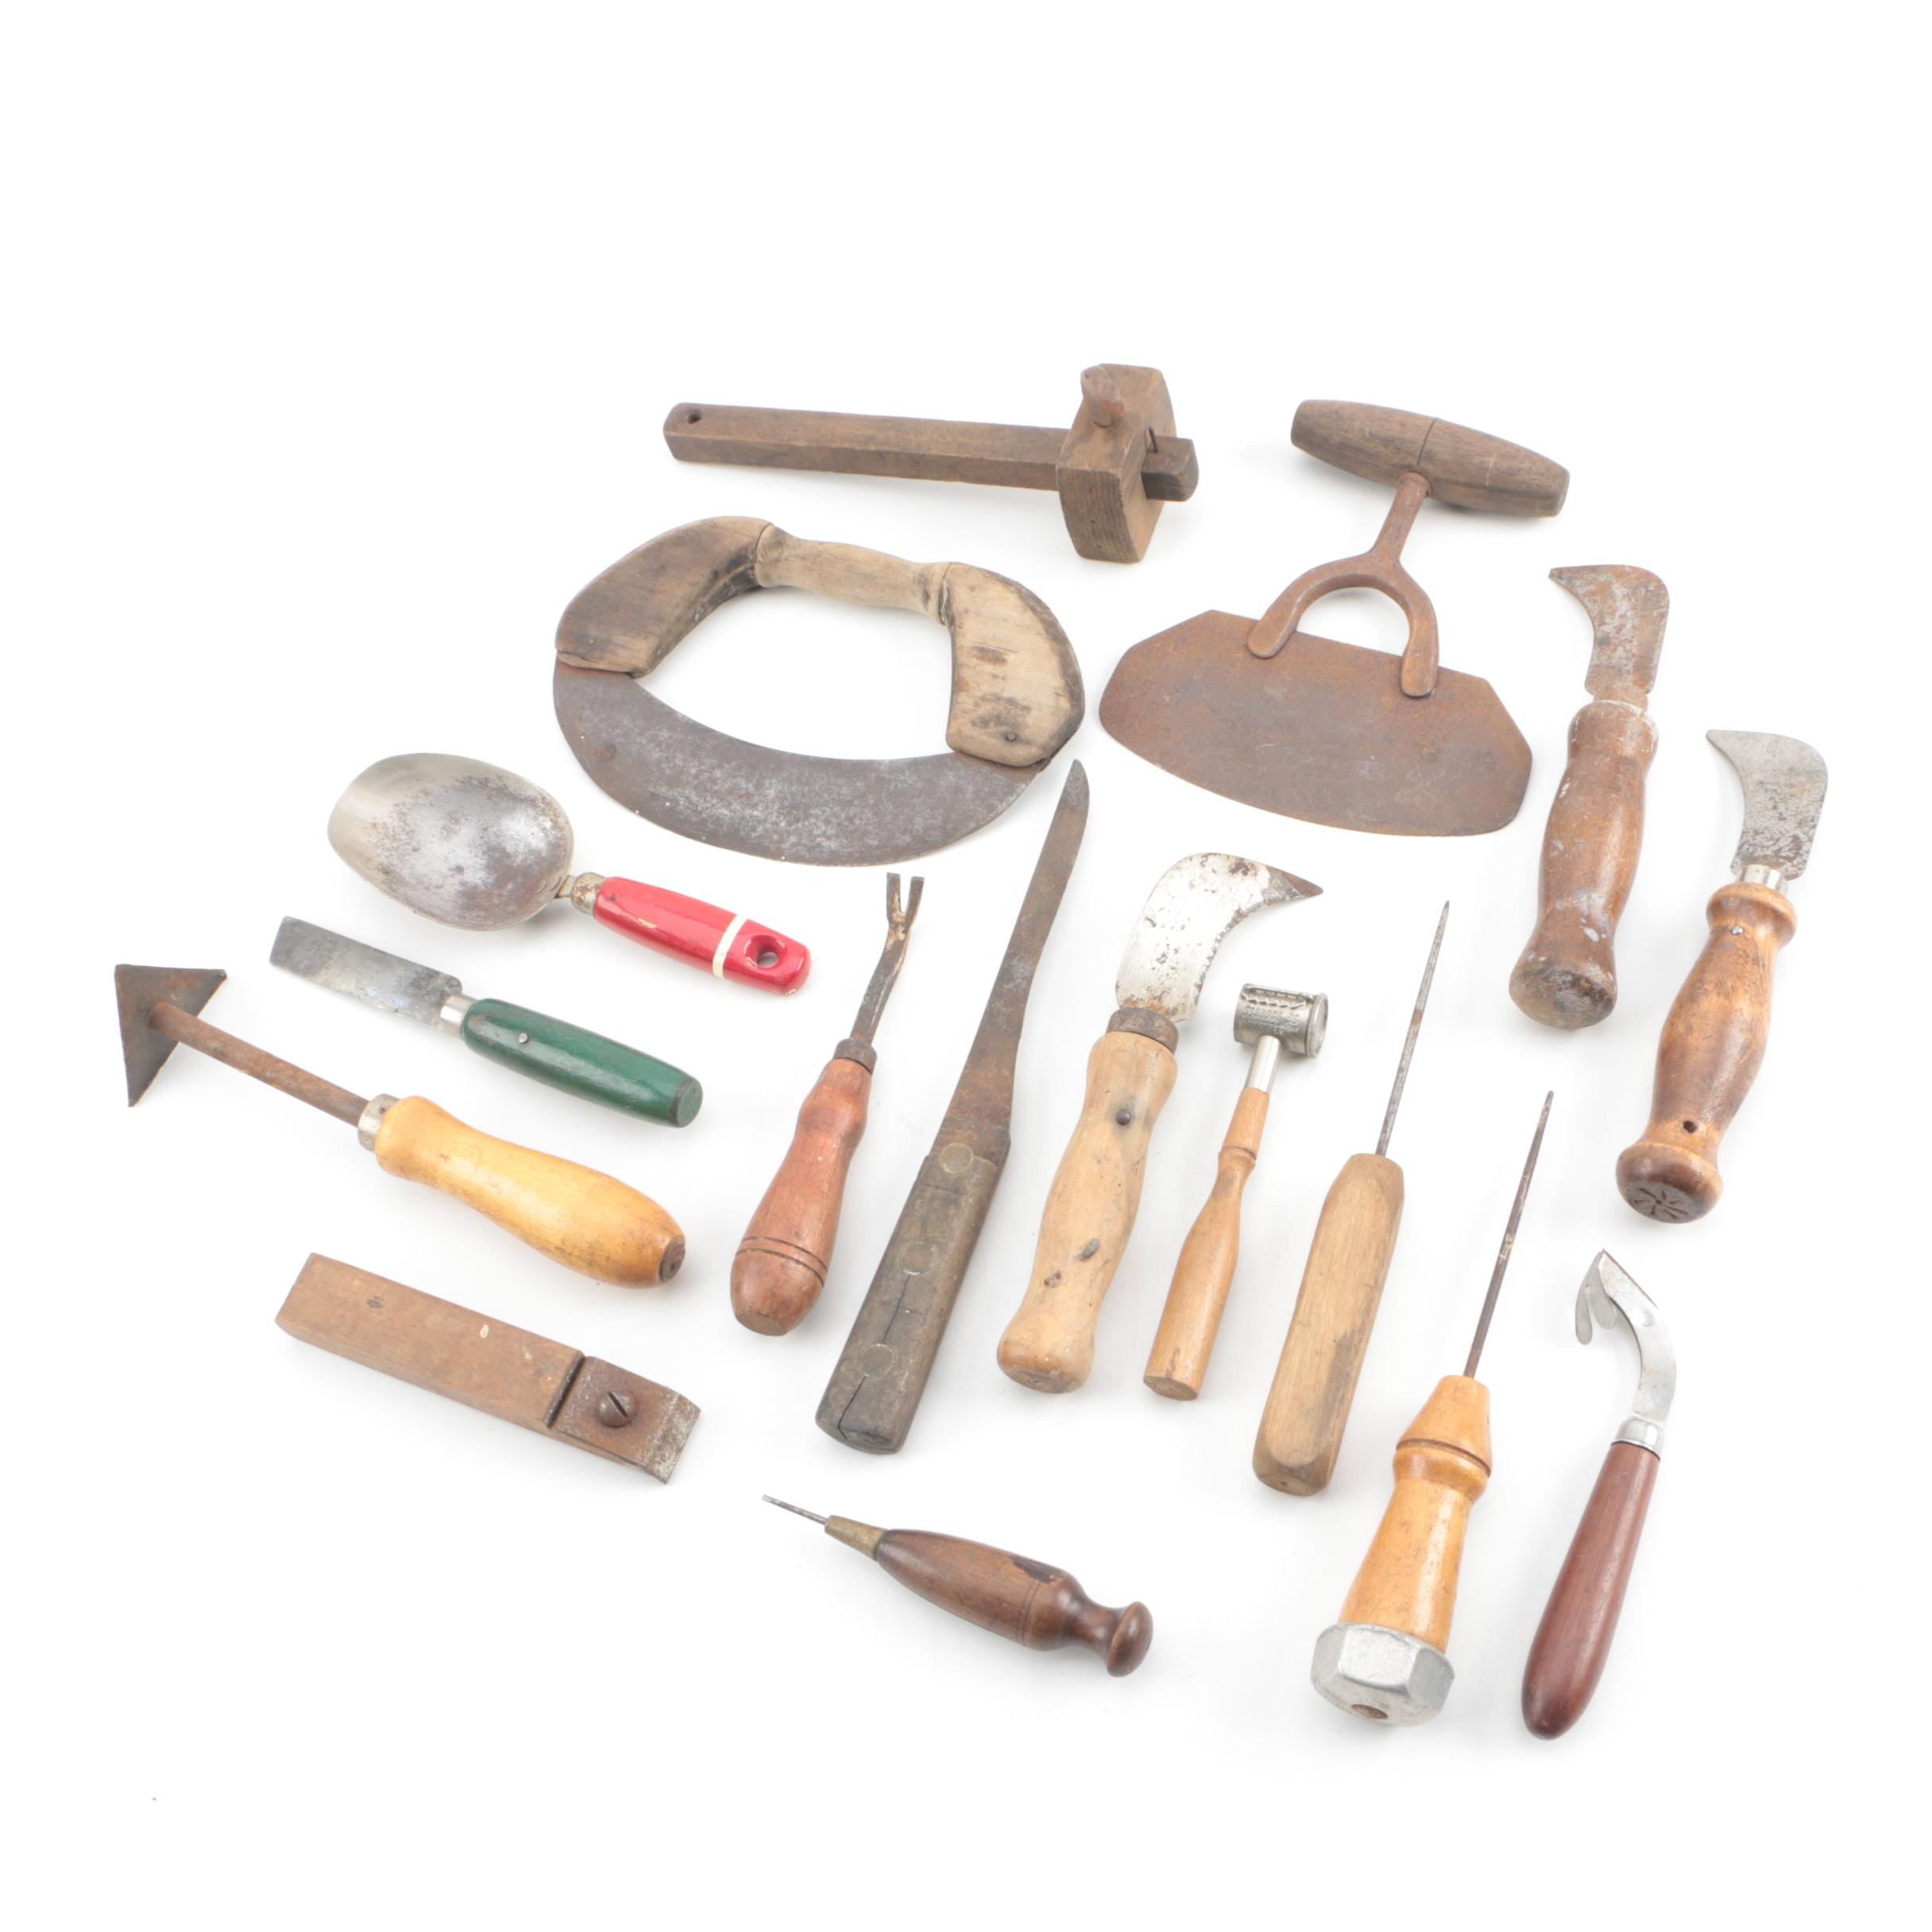 Antique And Vintage Kitchen, Upholstery, And Garden Tools ...